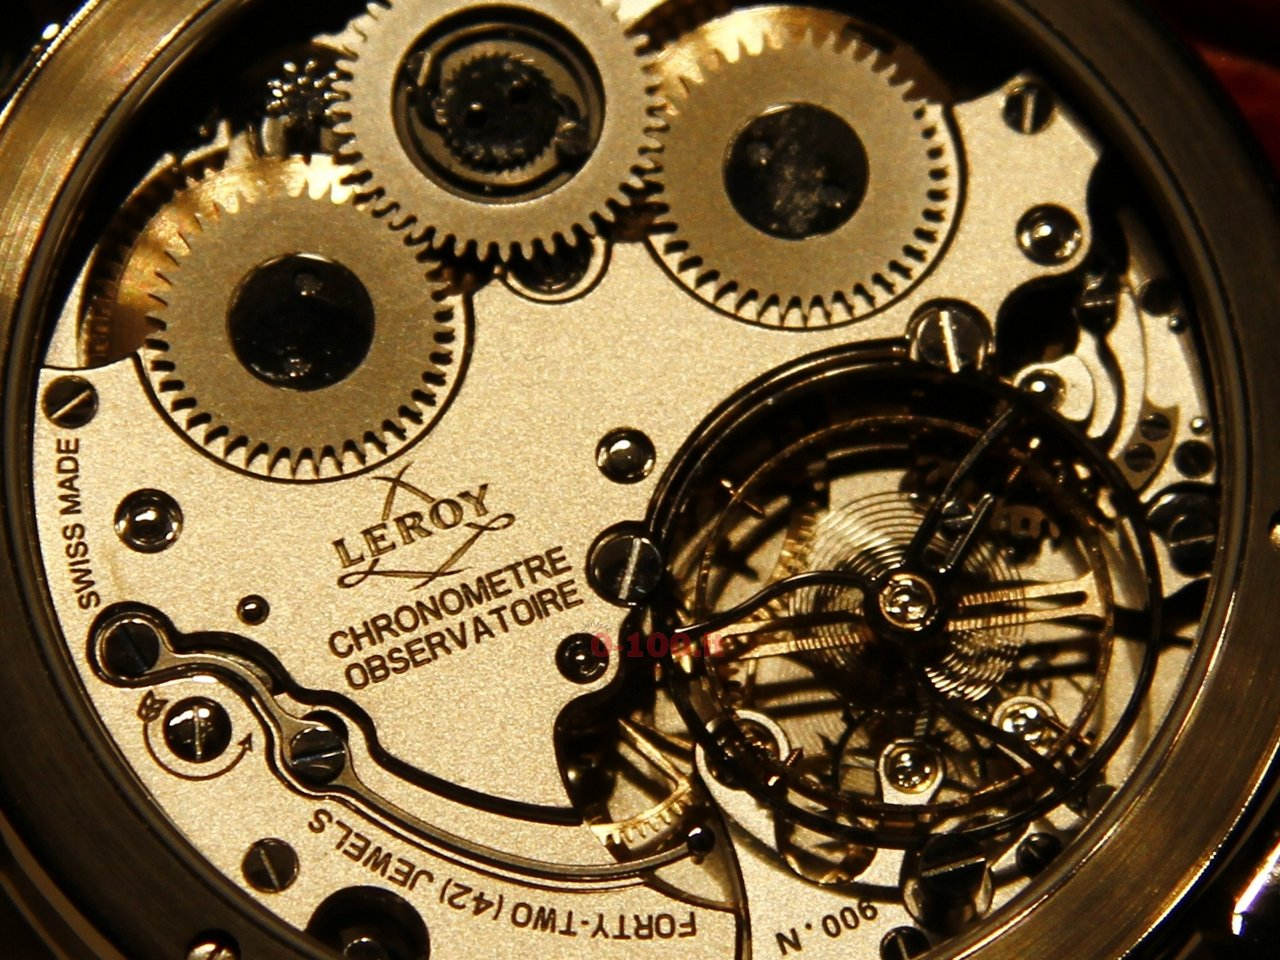 baselworld-2015_leroy-chronometer-l200-0-100-15